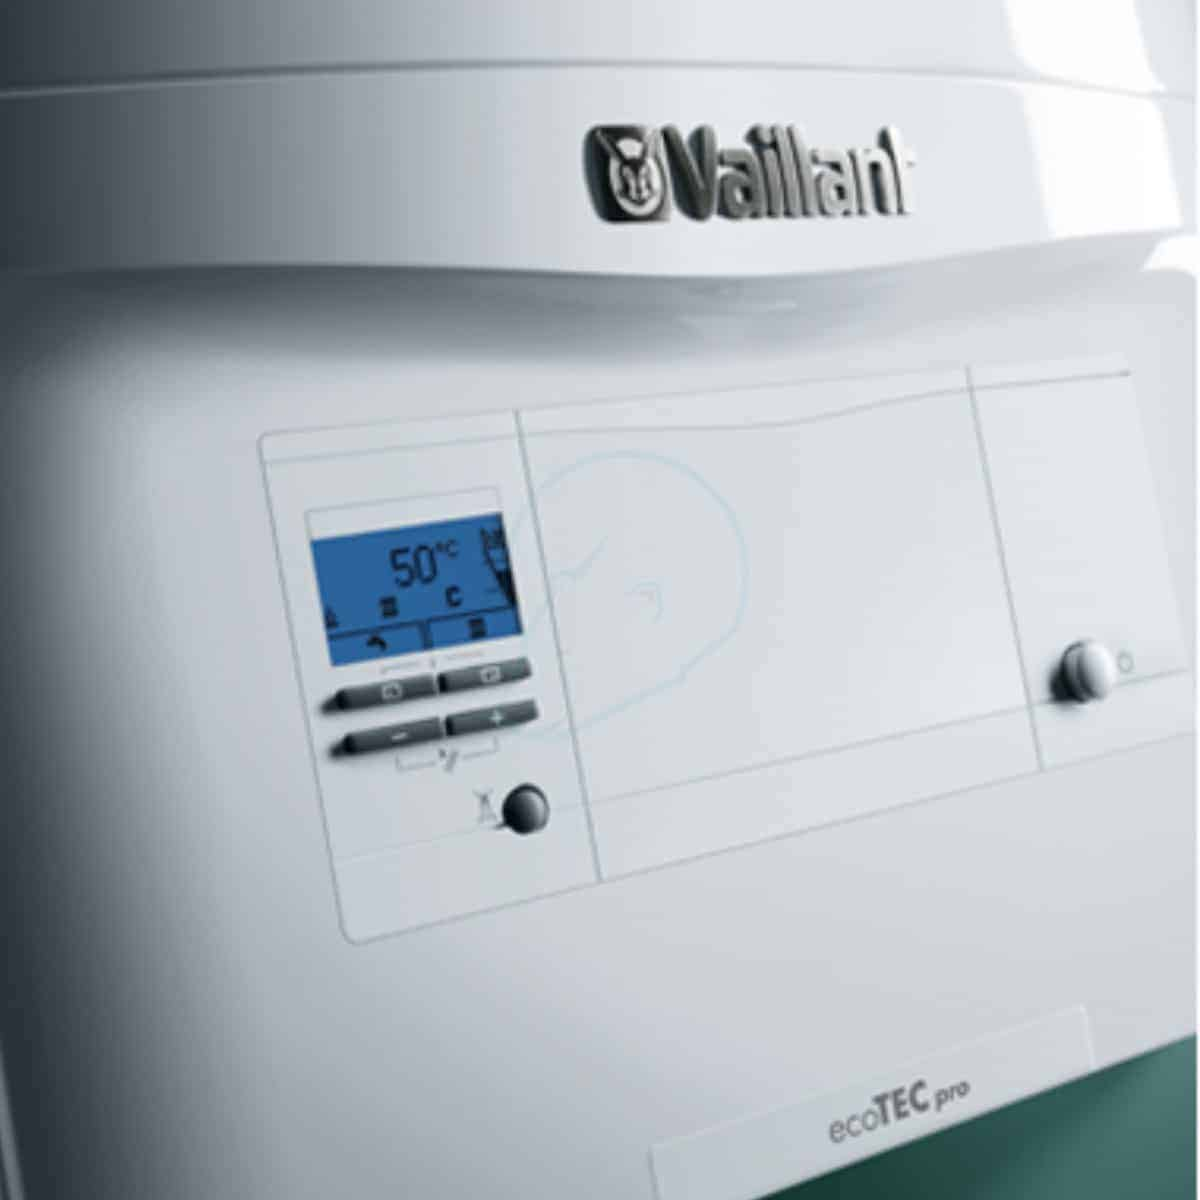 Boiler Lockout? Here's How To Reset A Boiler. - Heating Force